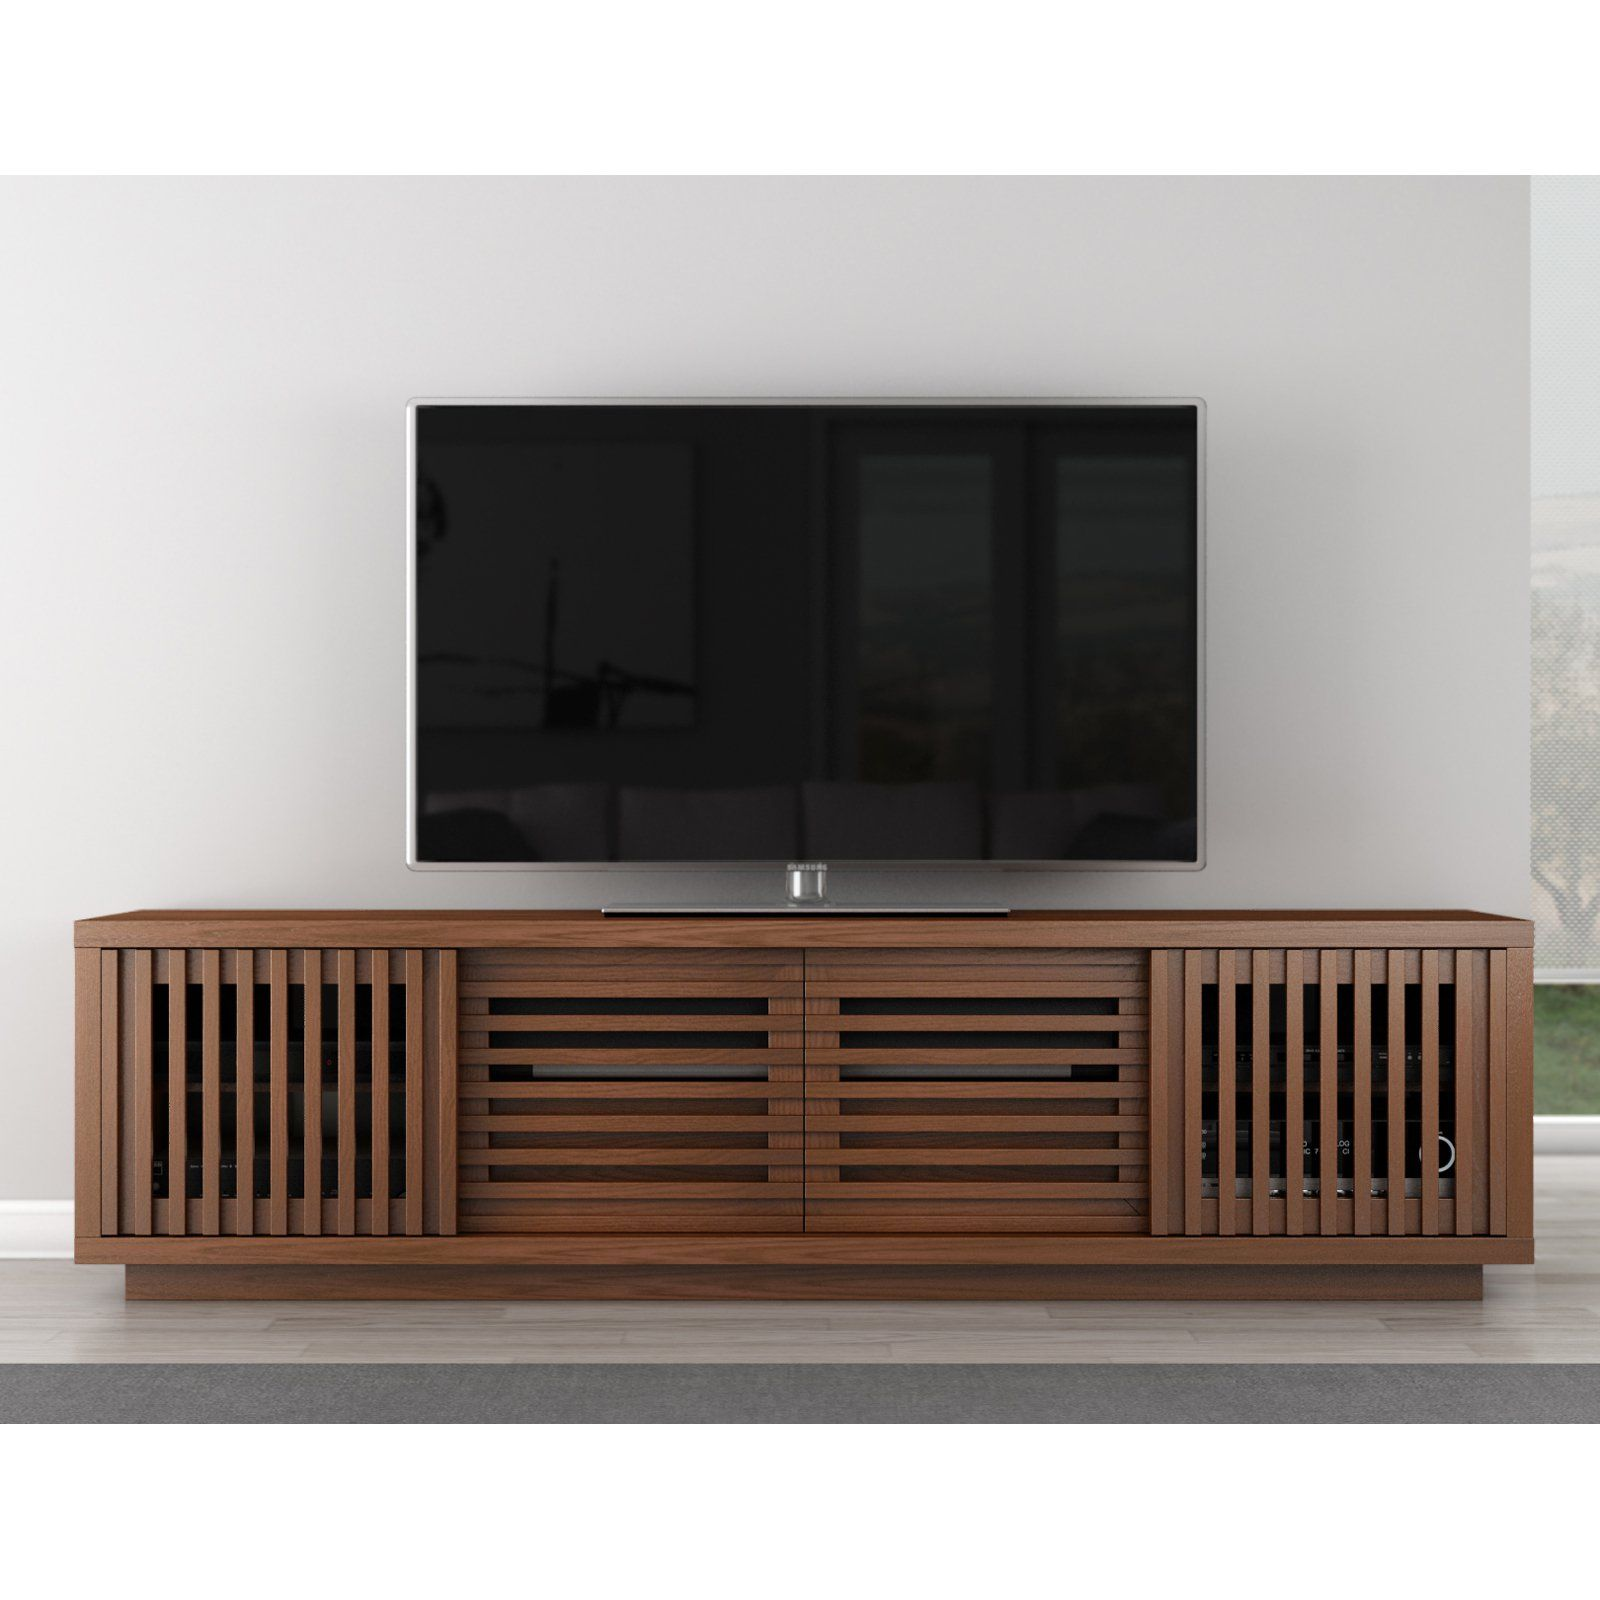 furnitech  in contemporary rustic tv stand media console  from  - contemporary rustic tv stand media console  from hayneedlecom